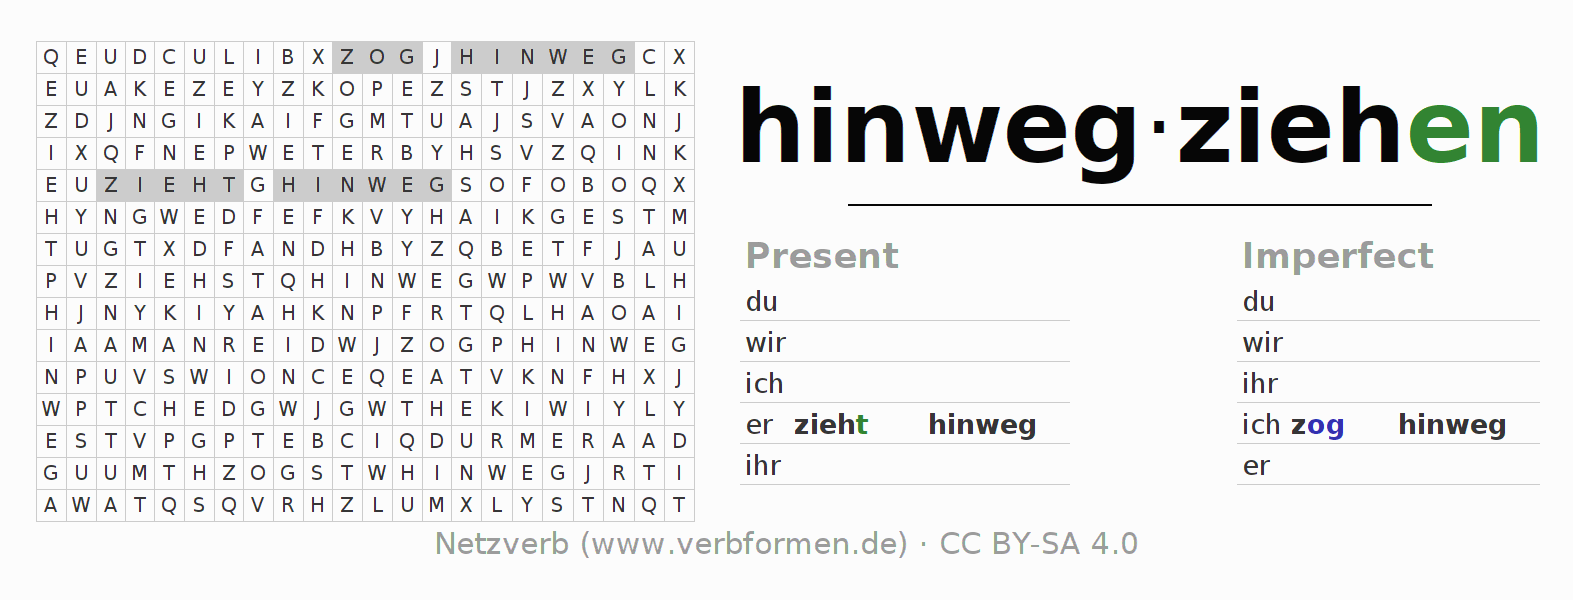 Word search puzzle for the conjugation of the verb hinwegziehen